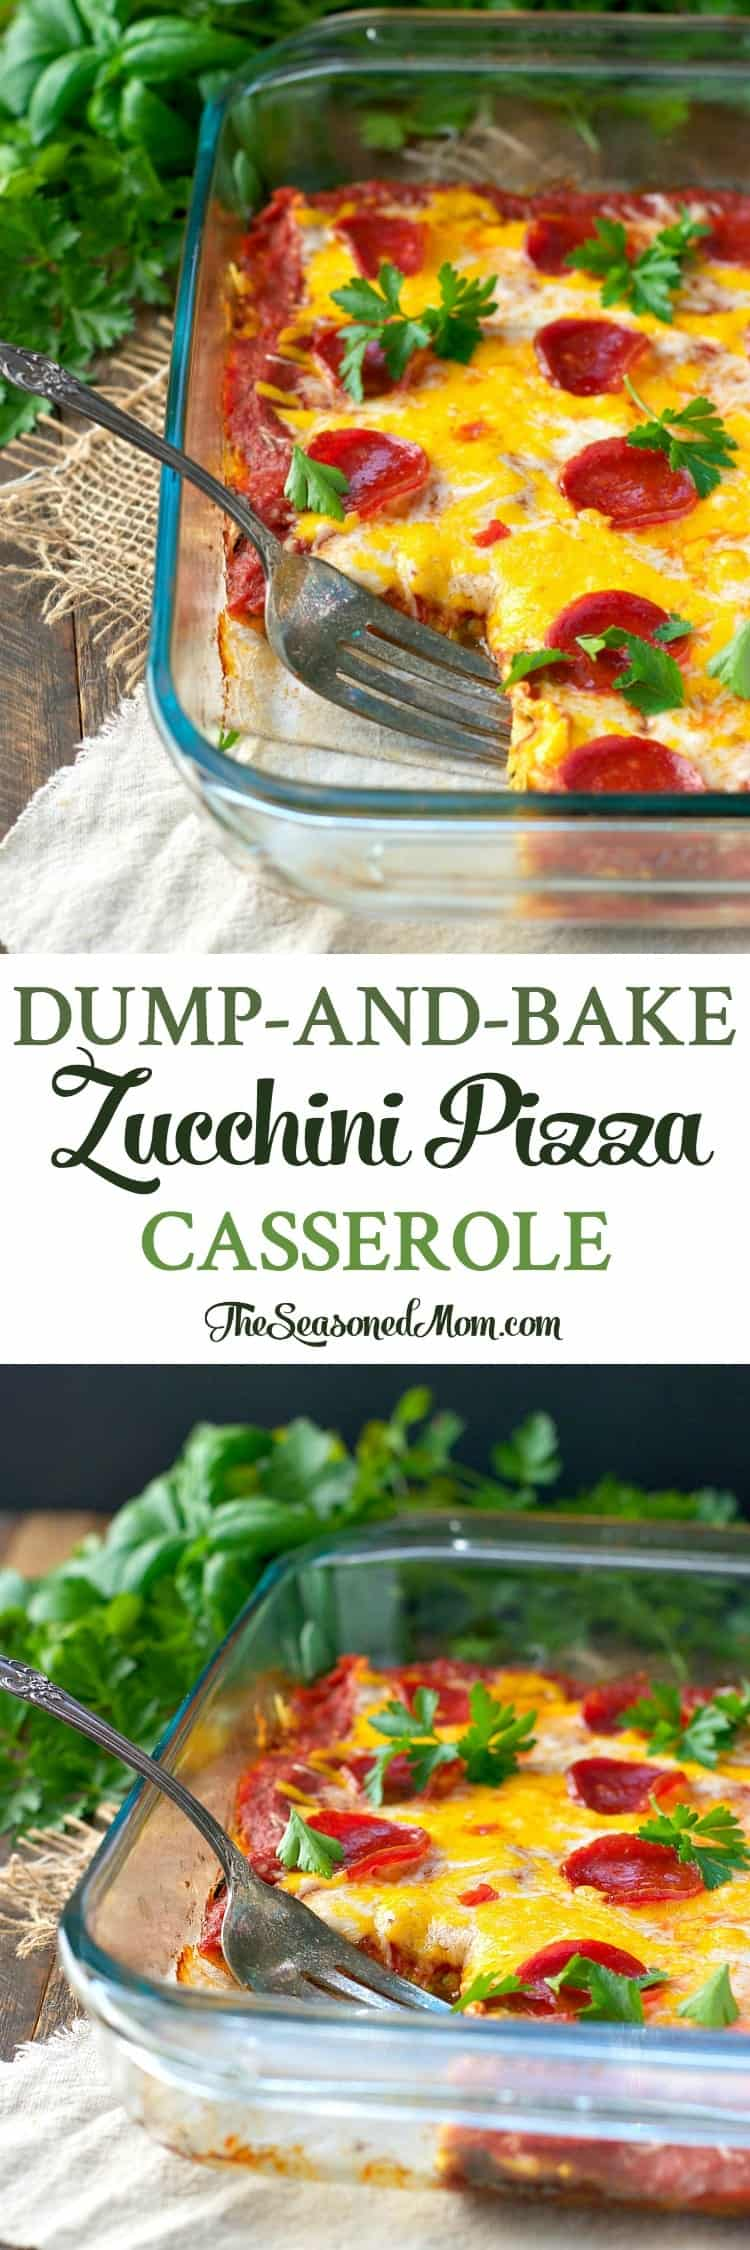 Just 10 minutes of prep for this easy low-carb dinner: Dump-and-Bake Zucchini Pizza Casserole. Seriously -- the best way to get kids to eat their vegetables!